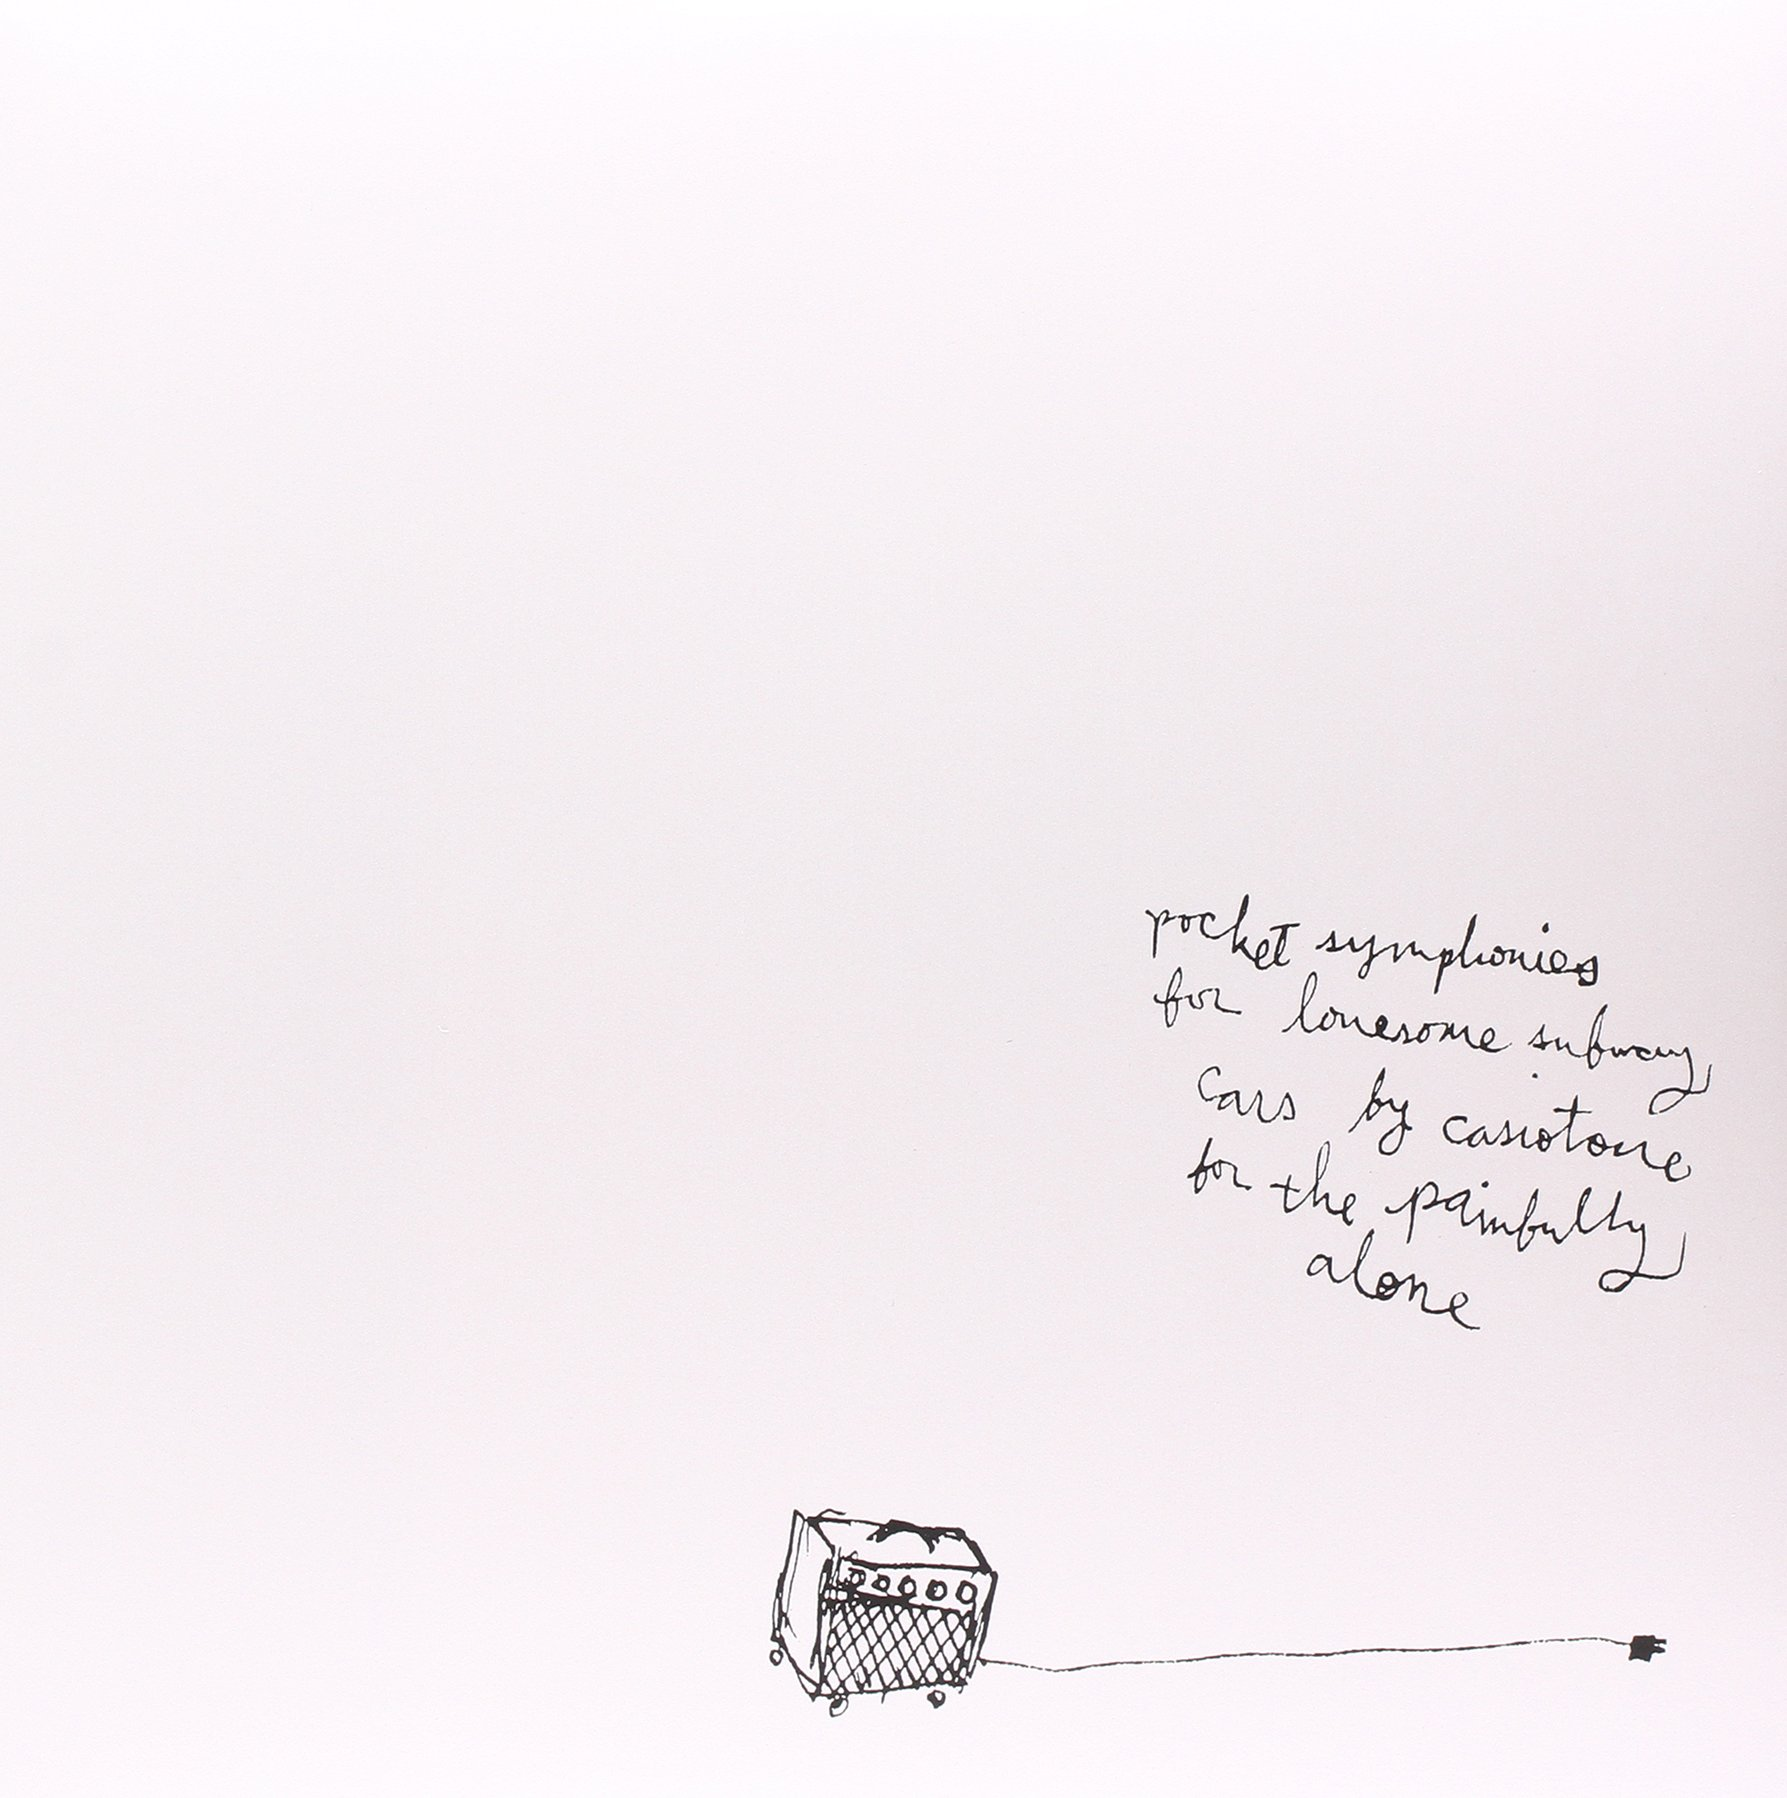 Pocket Symphonies for Lonely Subway Cars [Vinyl]